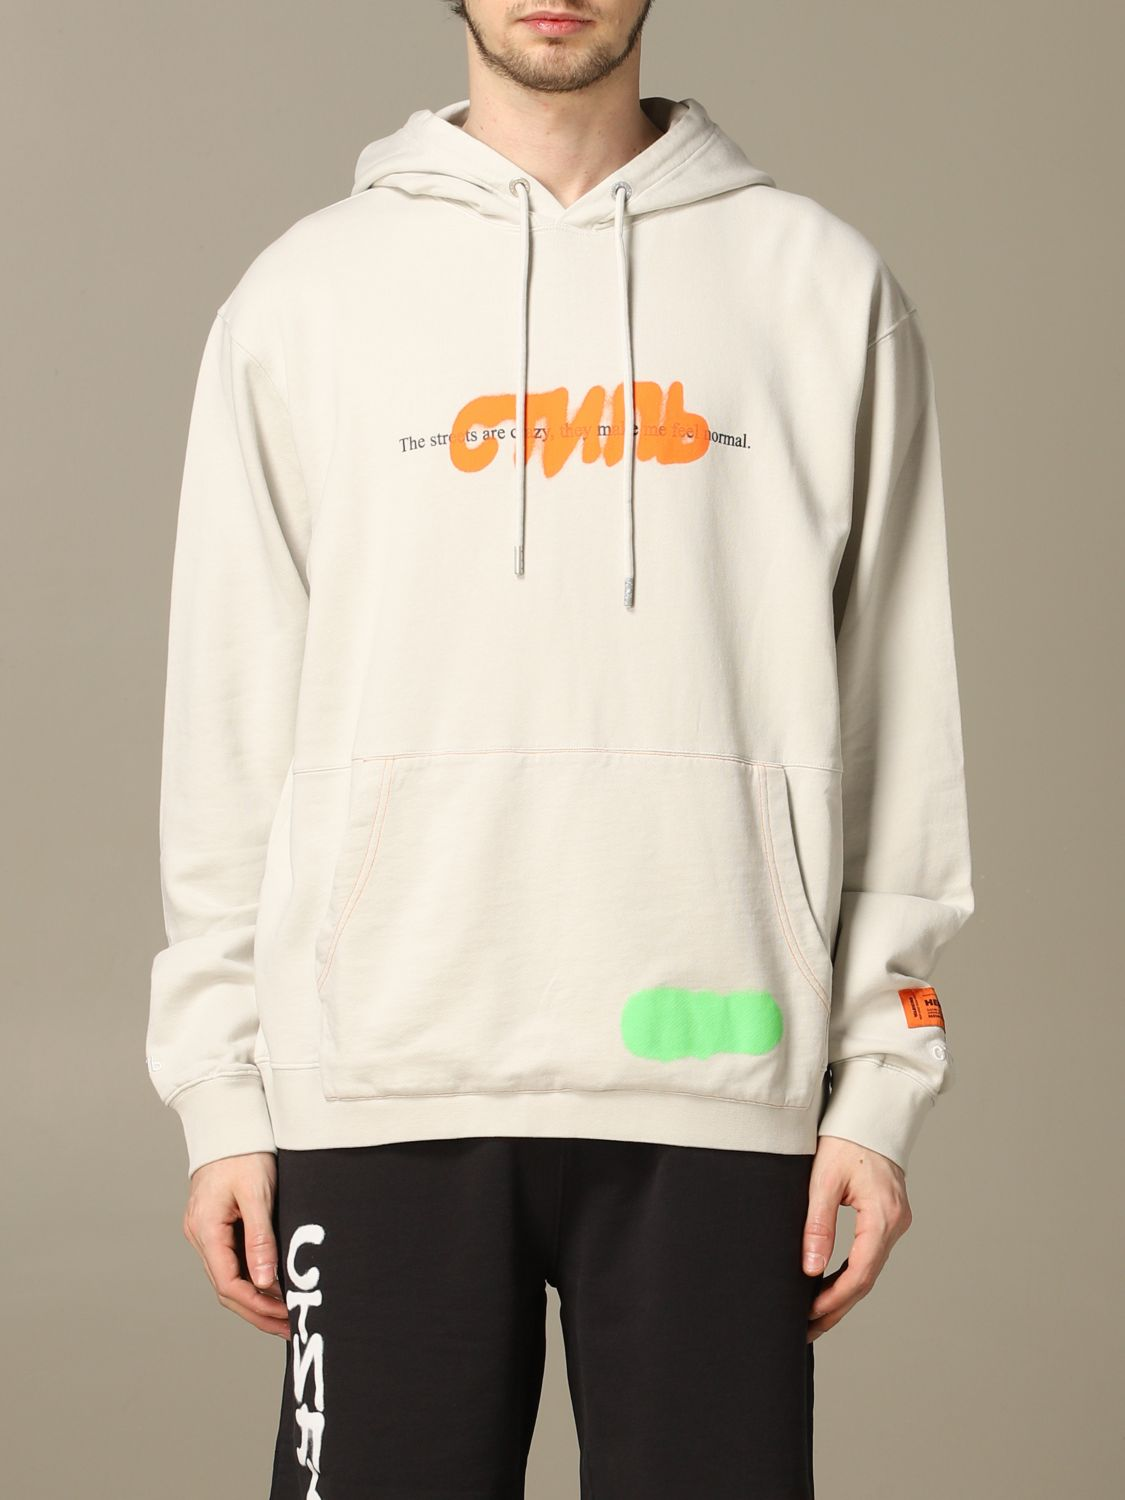 Sweatshirt herren Heron Preston ice 1